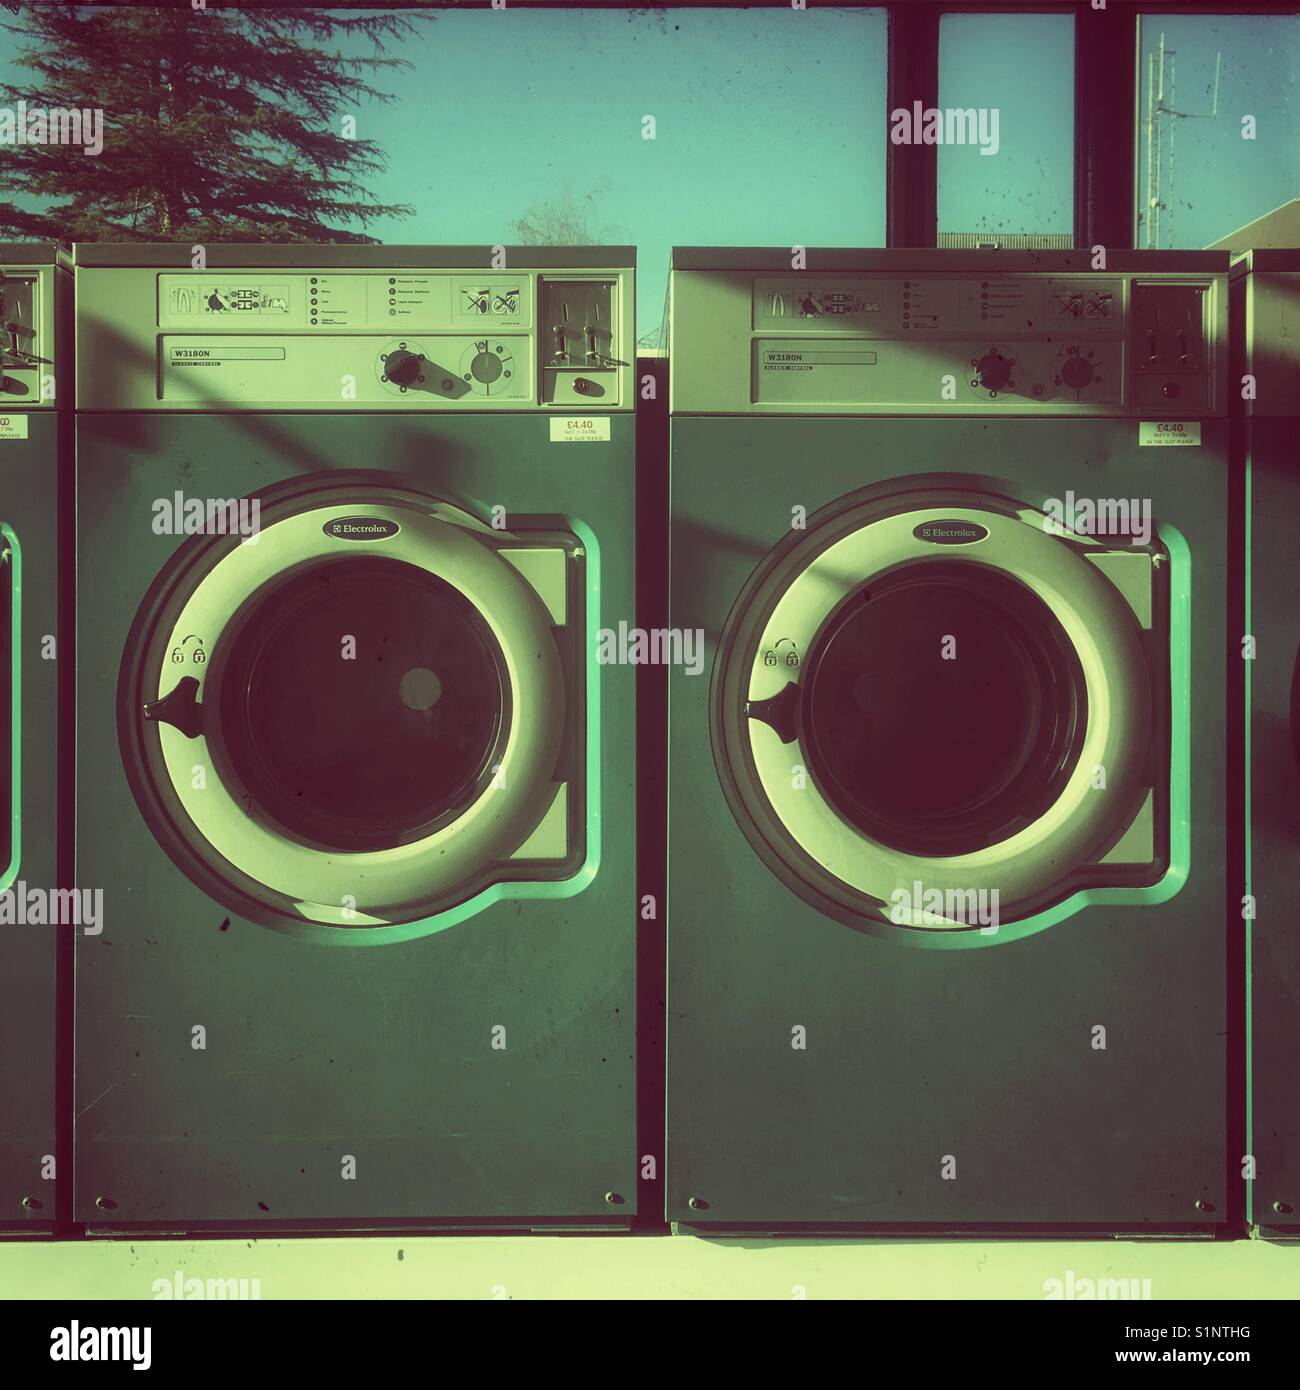 Coin operated washing machines at laundrette, UK - Stock Image